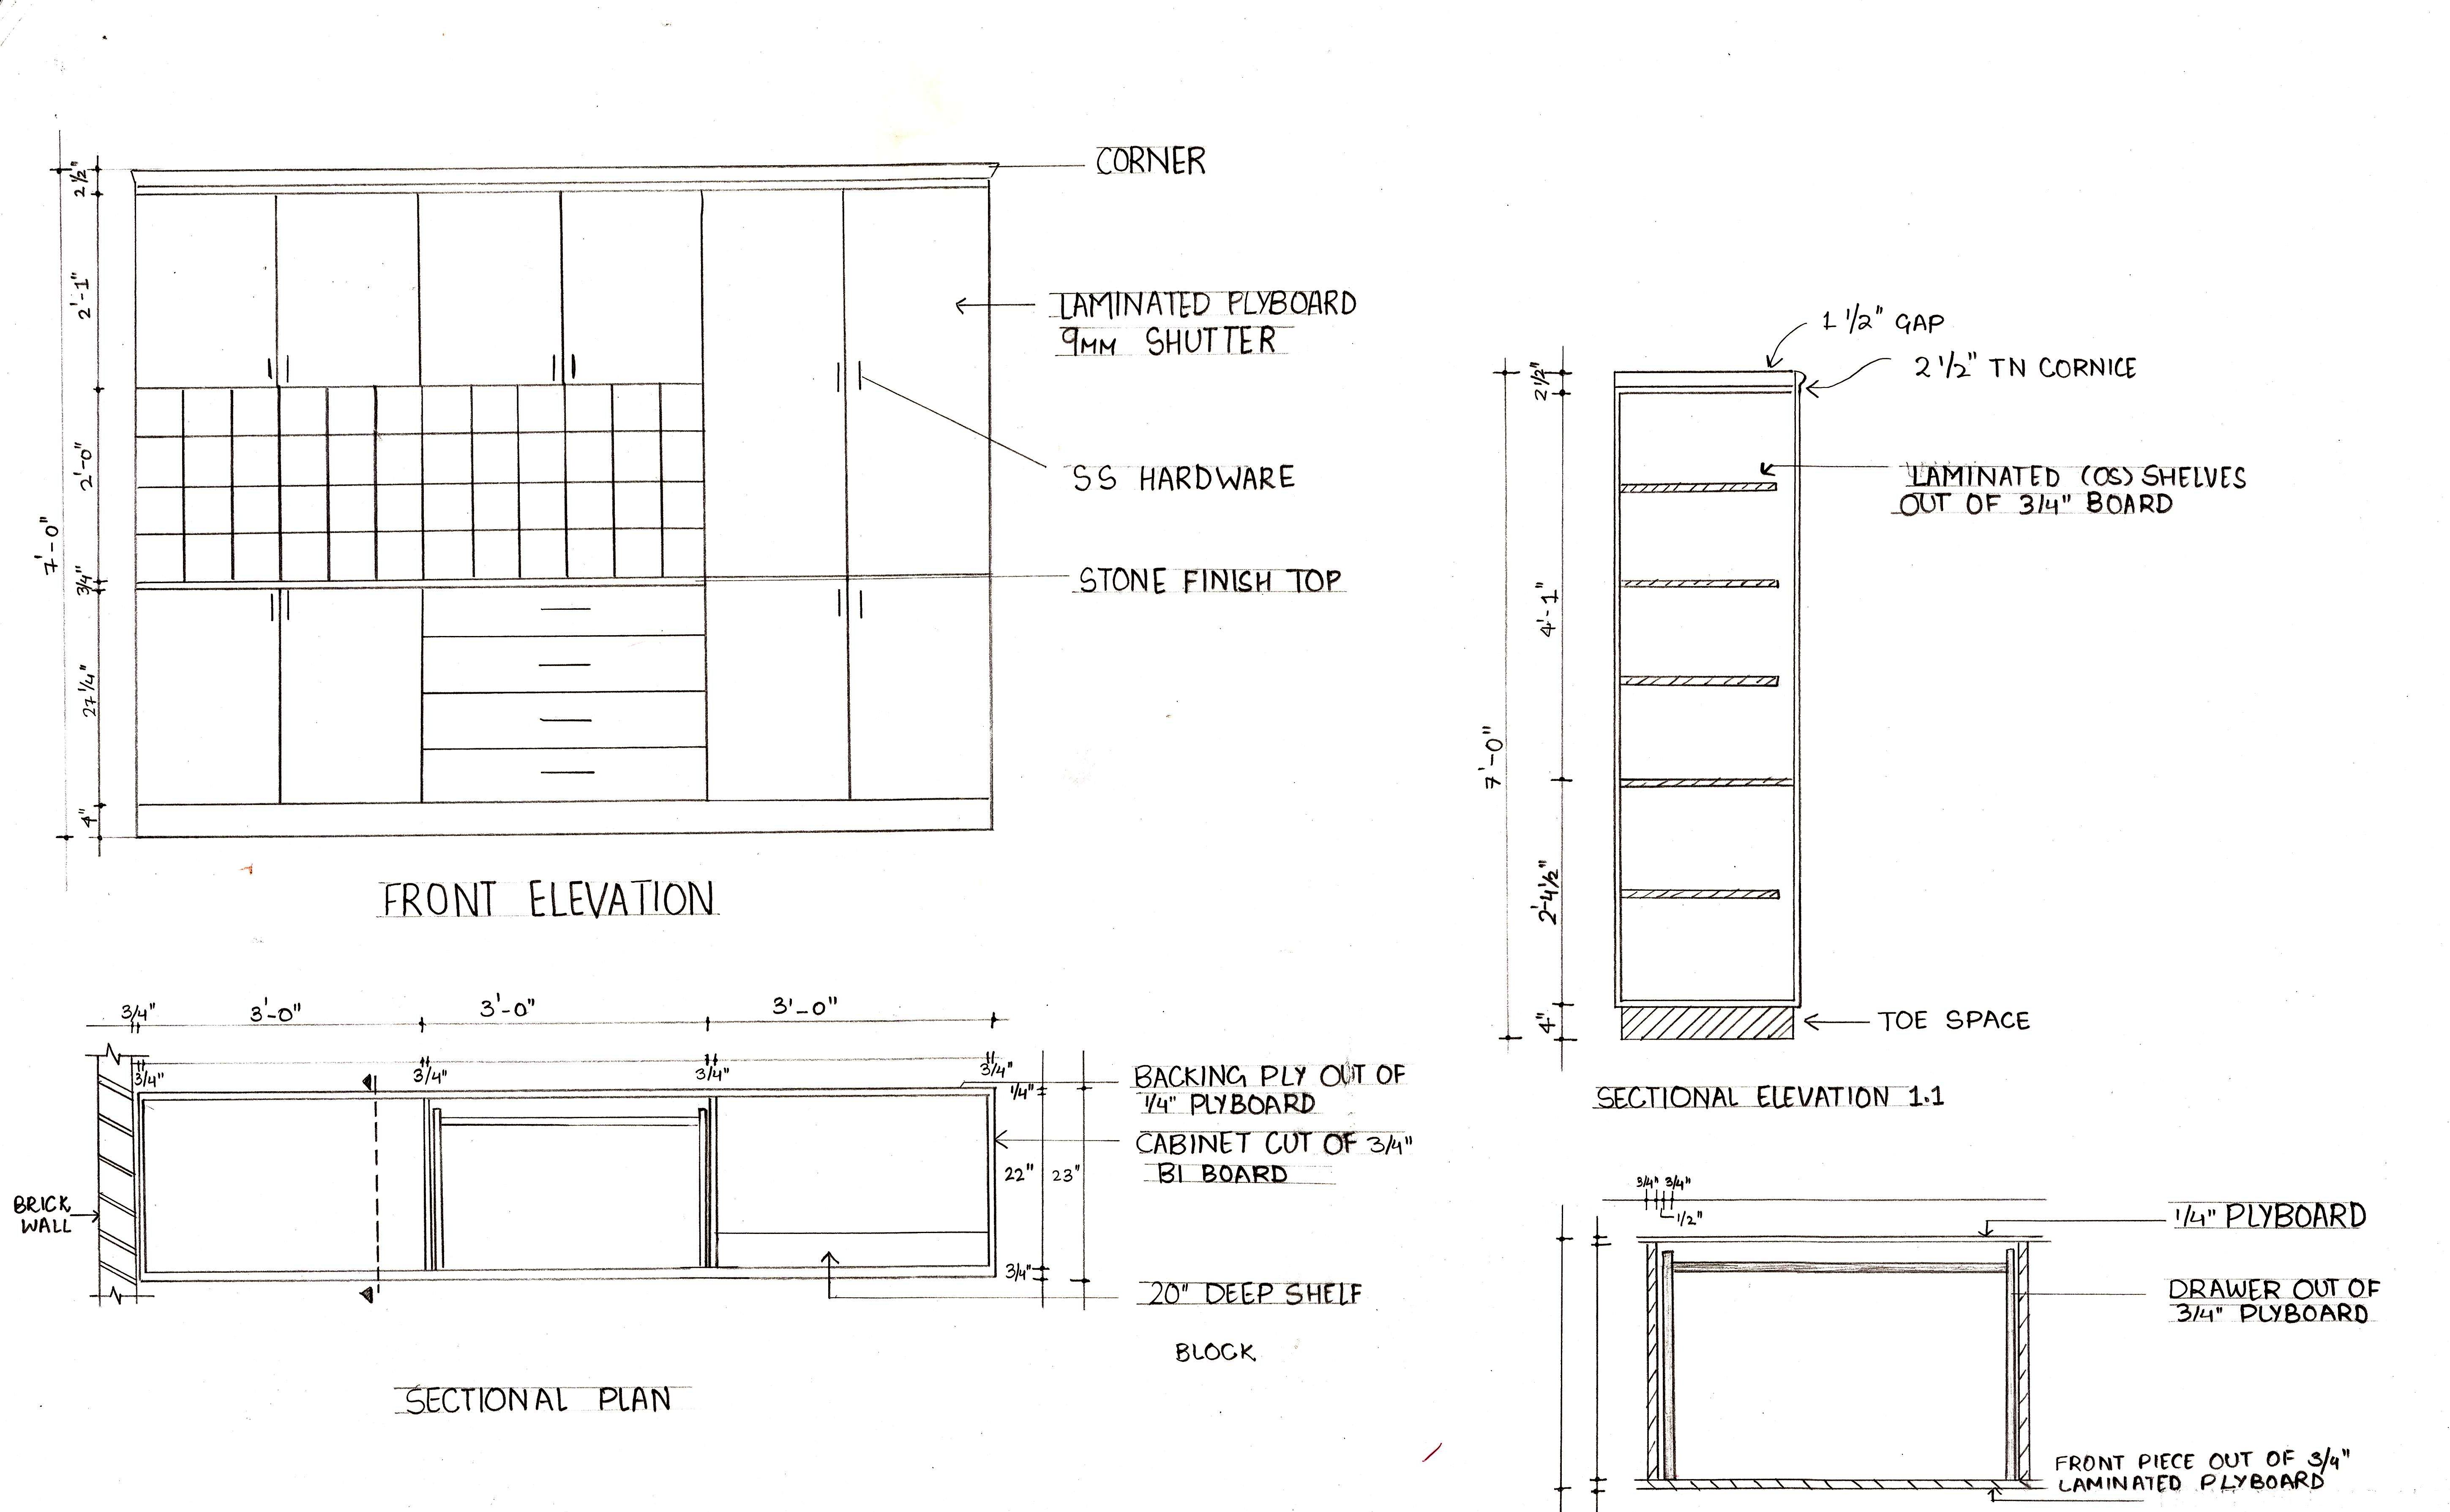 Cabinet Dimensions Standard Home Design Standard Height For Bathroom Vanity Plumbing 95 Lazy